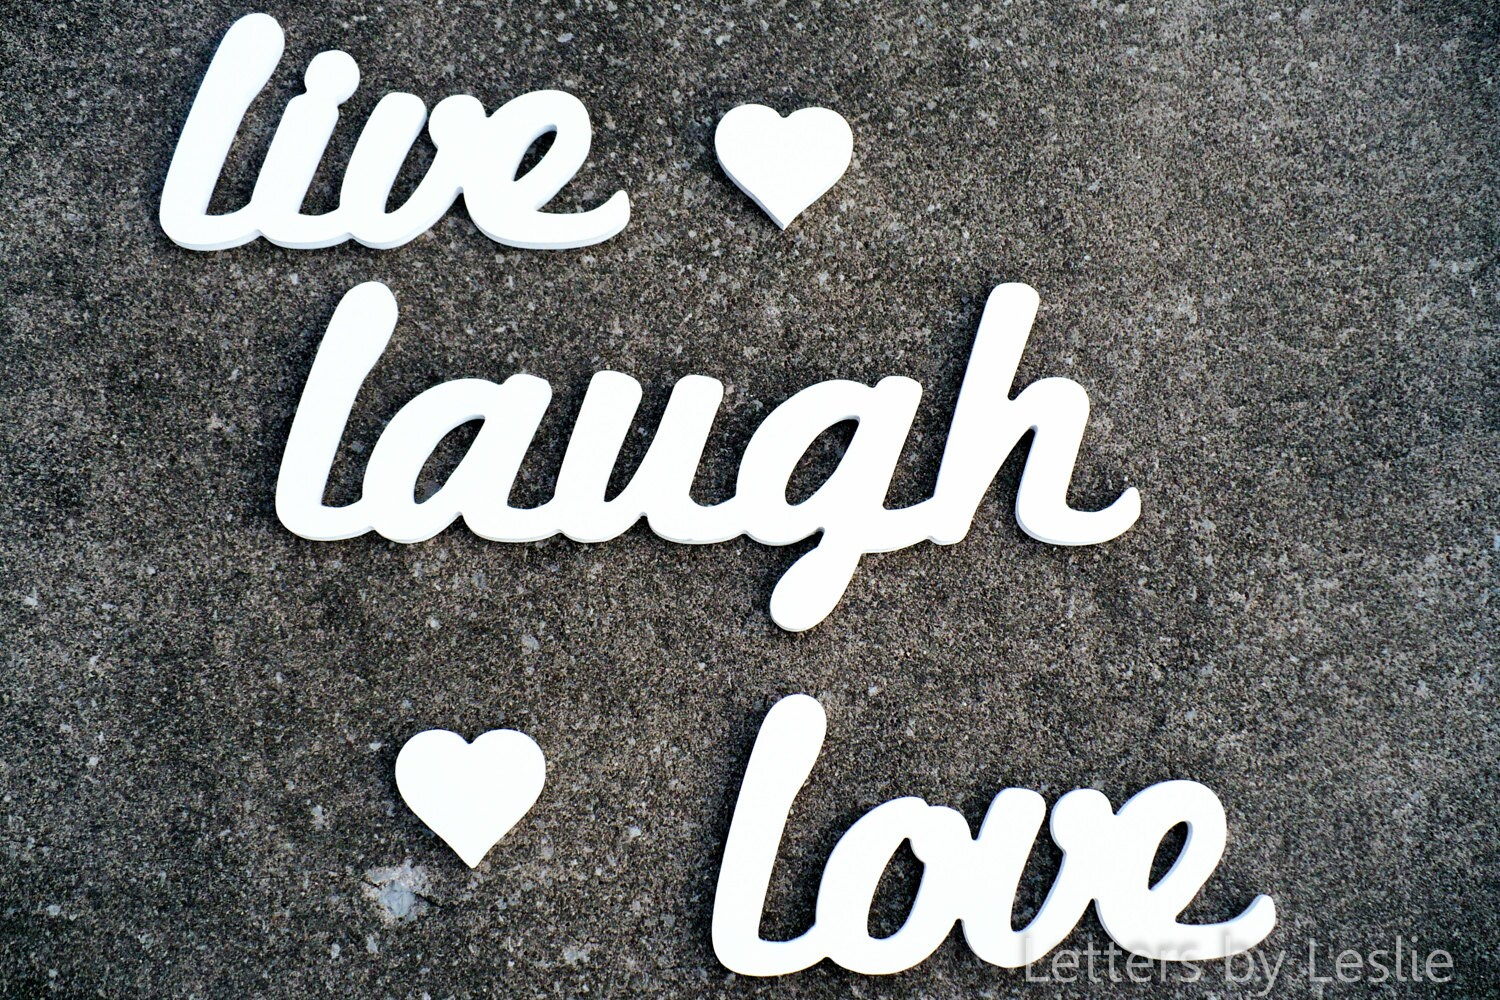 Cursive Wall Letters Wooden Wall Letters Wall Words Live Laugh Love Wall Decor